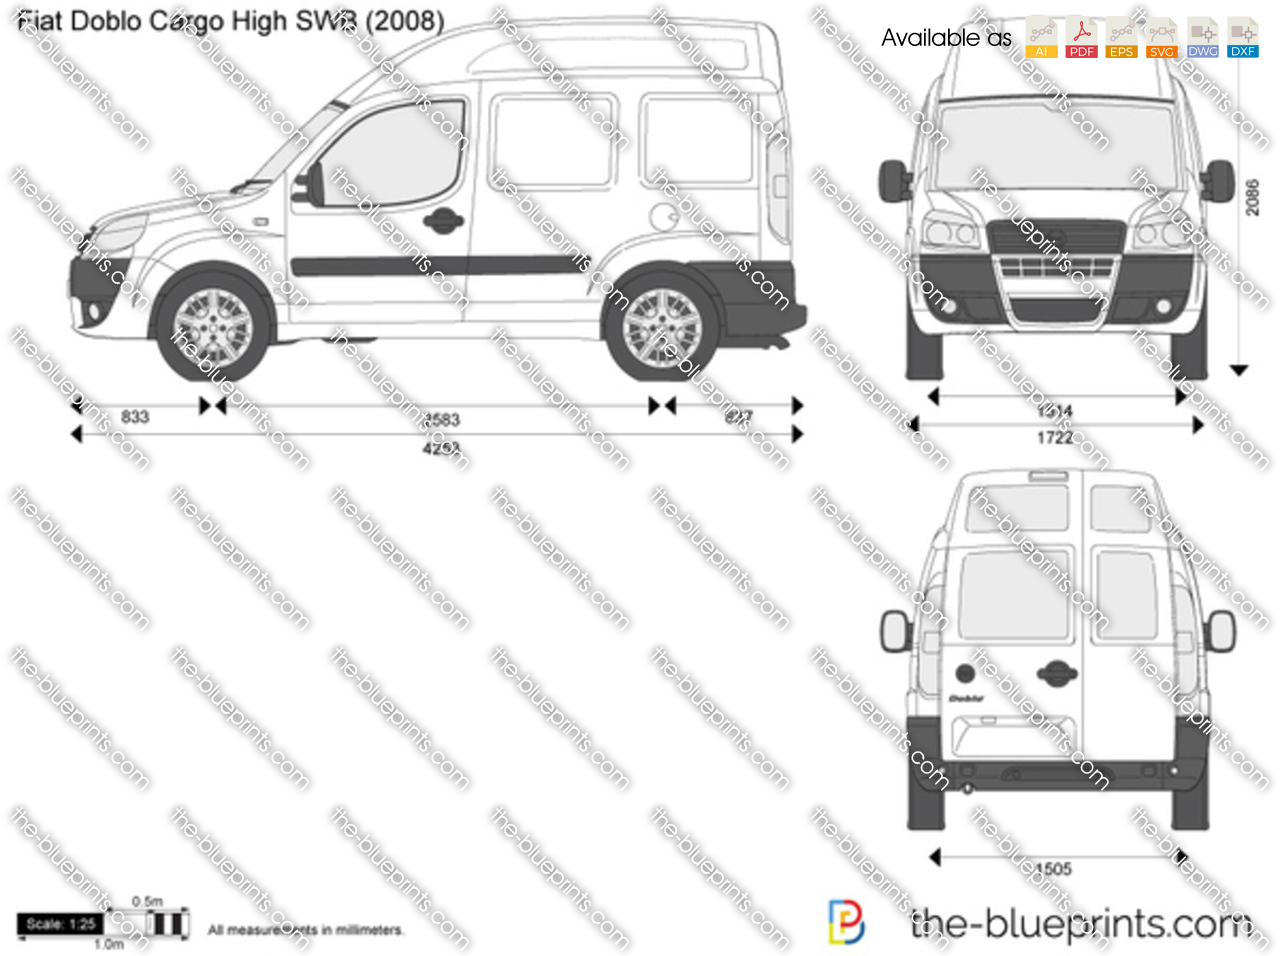 Fiat Doblo Wiring Diagram Pdf 29 Images Bravo 2006 Cargo High Swb The Blueprints Com Vector Drawing